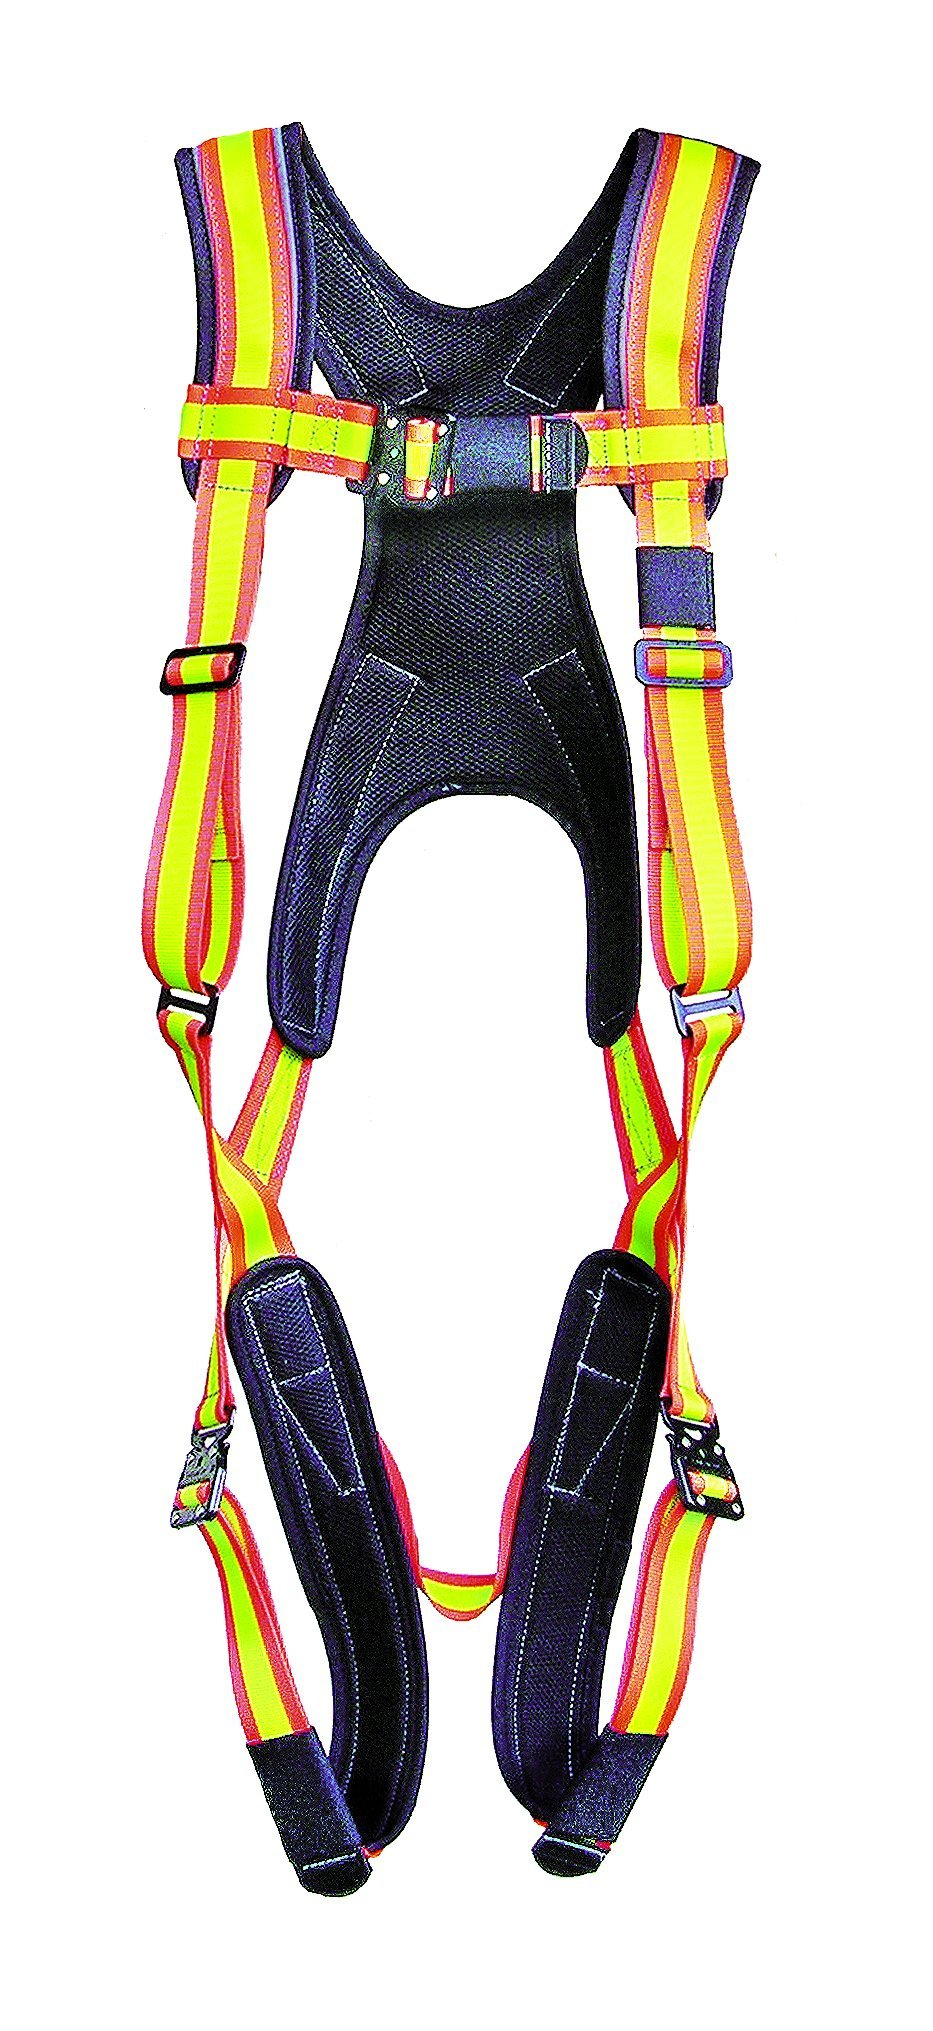 Super Anchor Safety PD-6101-HL Pro-Series Deluxe Full Body Harness plus Rear D-Ring, Large, Hi-Viz